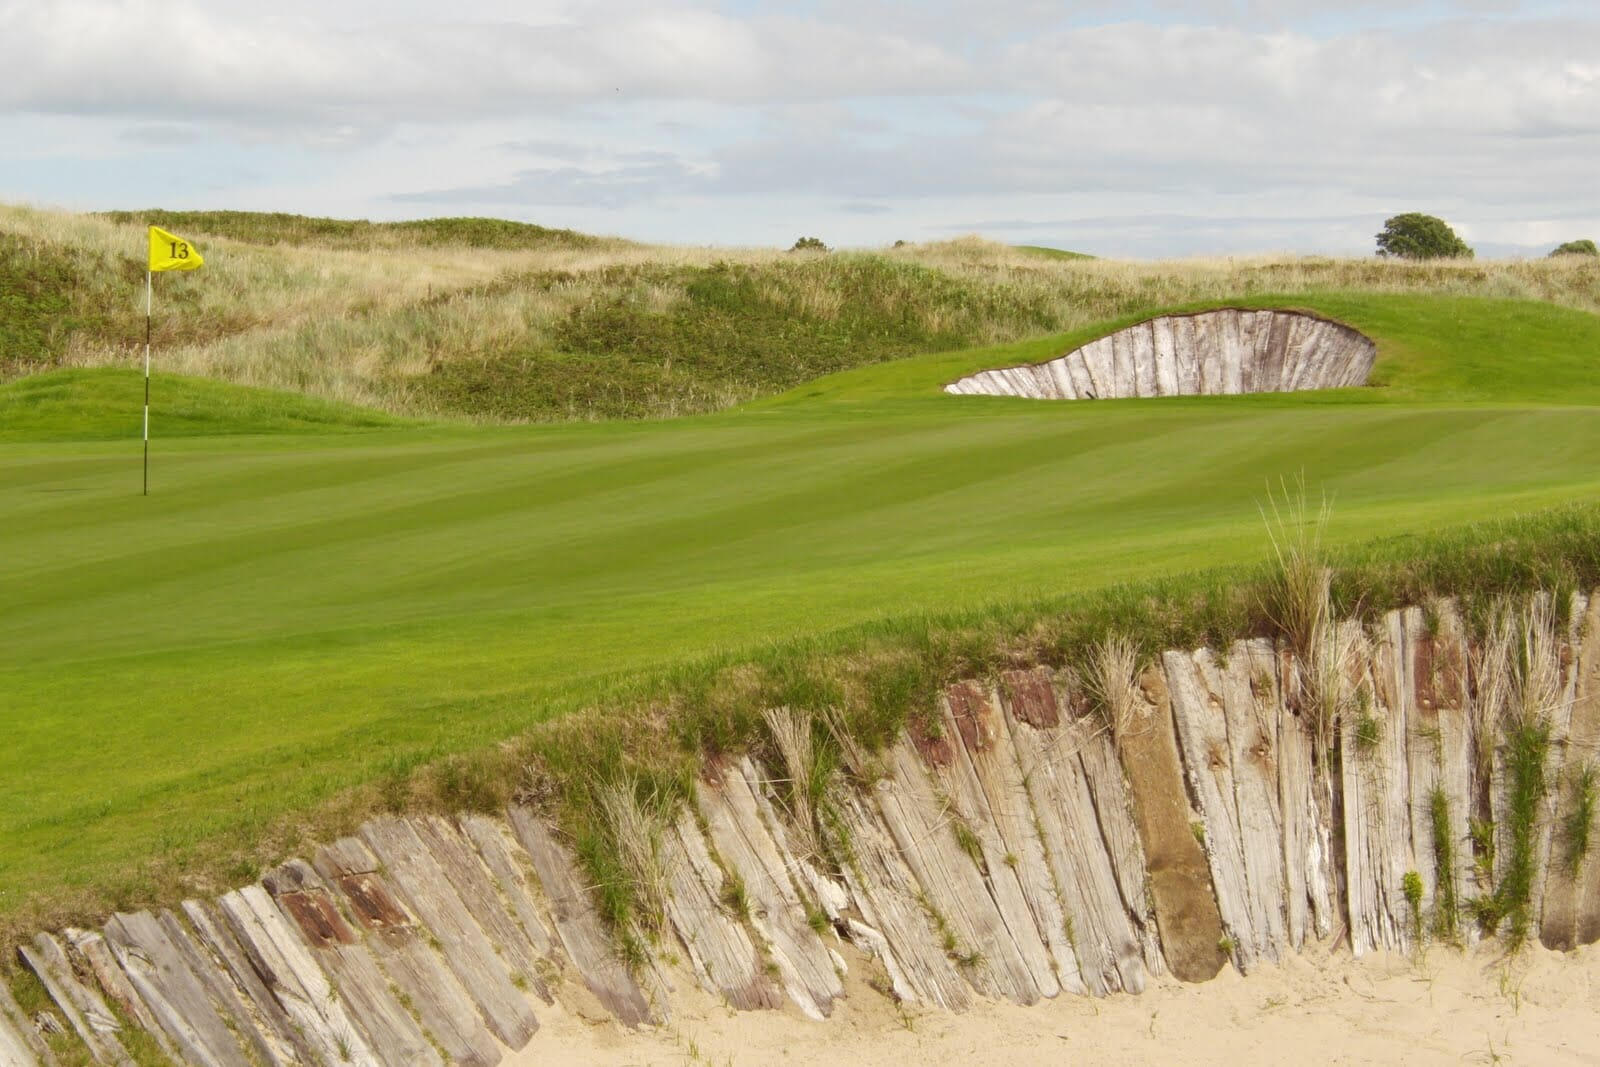 Image depicting the 13th green with the classic Railway Sleeper Bunkers at The European Golf Club, Ireland